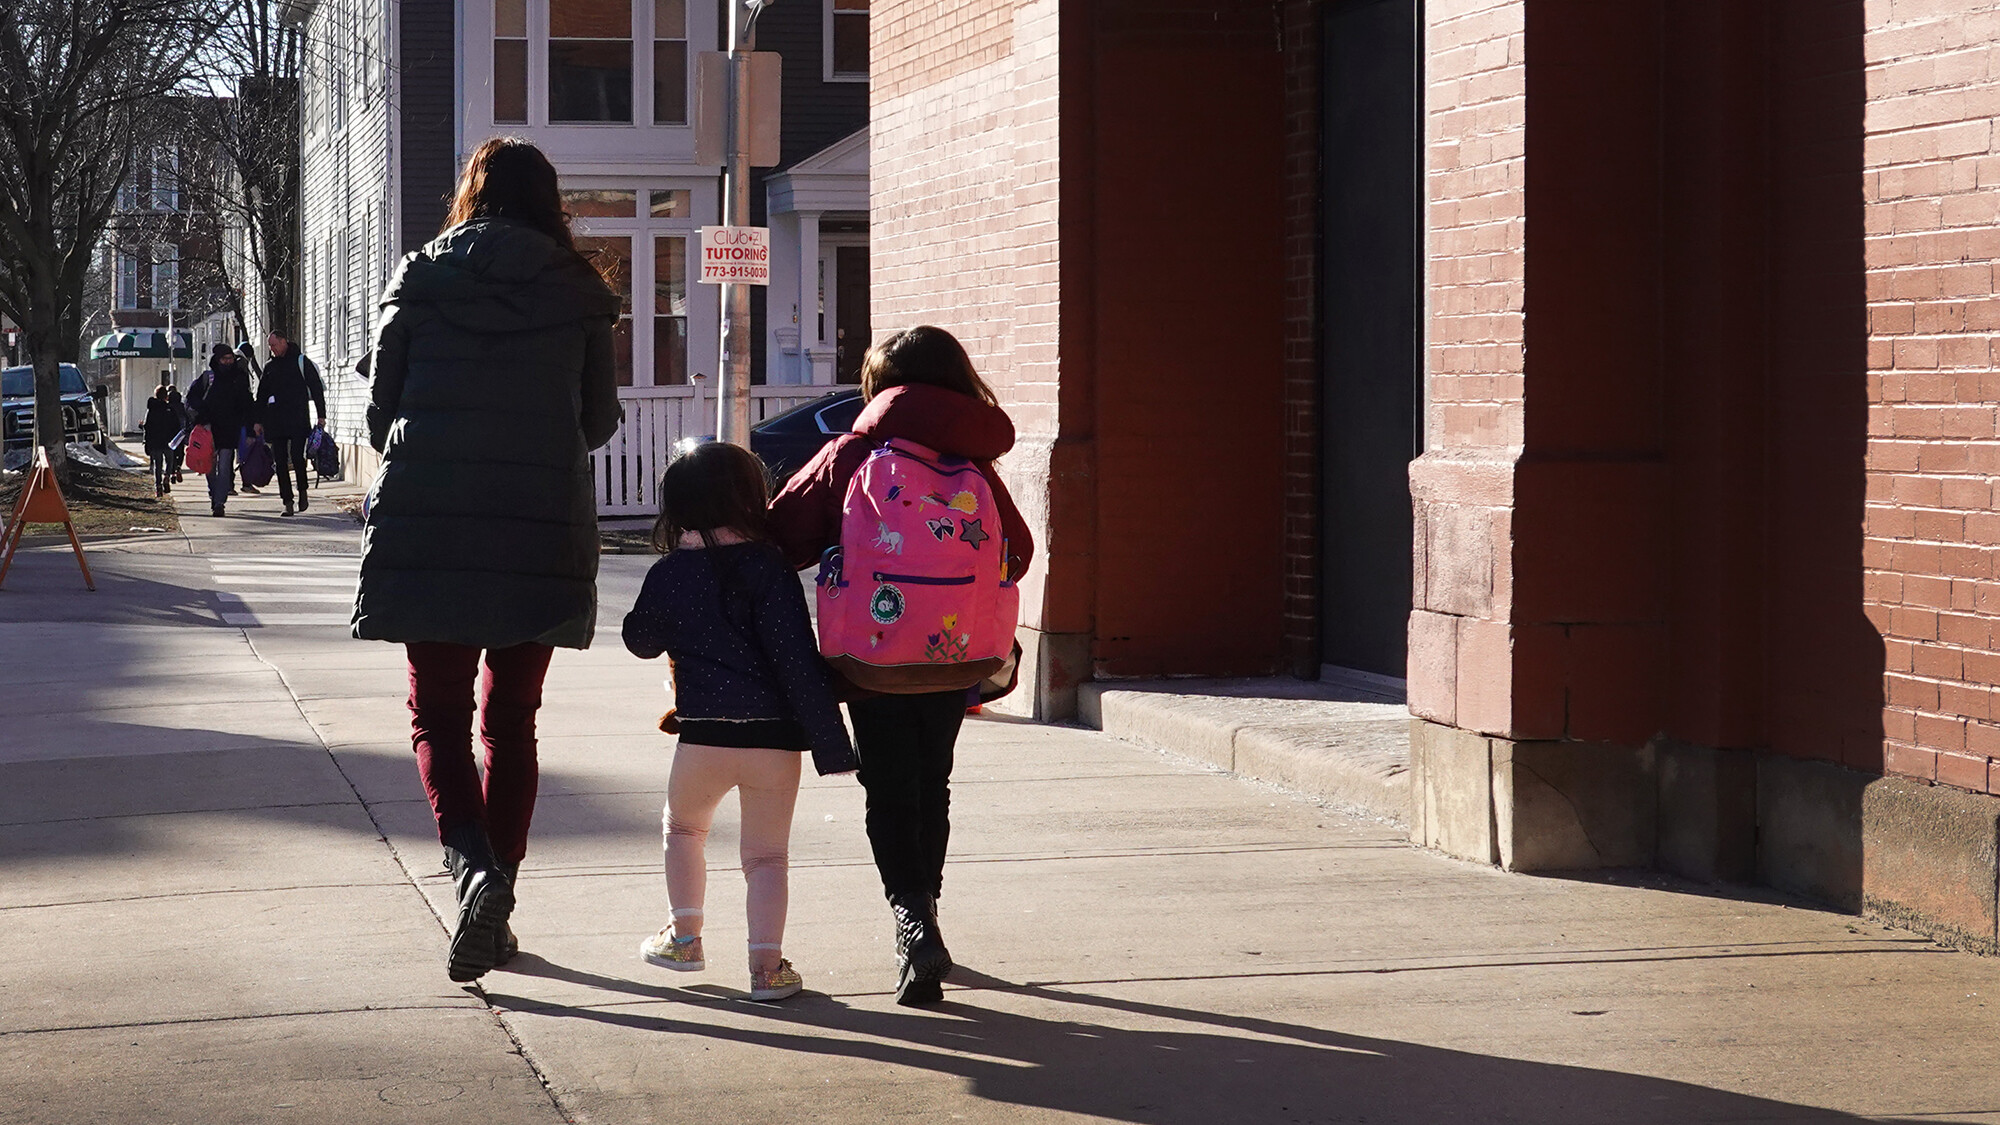 Third child tax credit payment on its way to millions of families